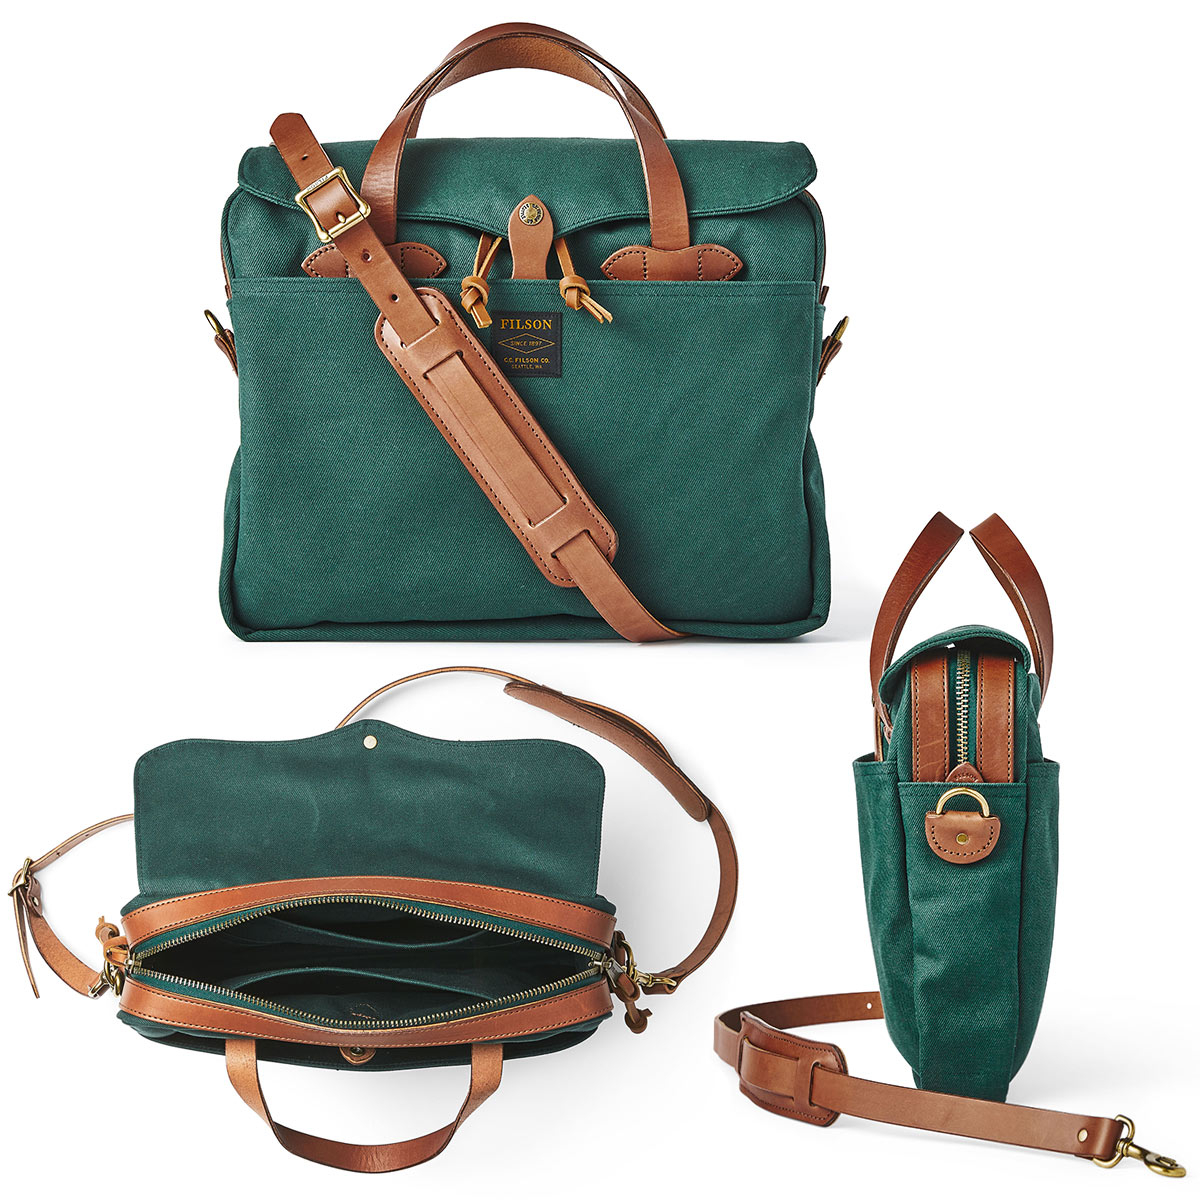 Filson Original Briefcase Hemlock, past goed in een urban omgeving